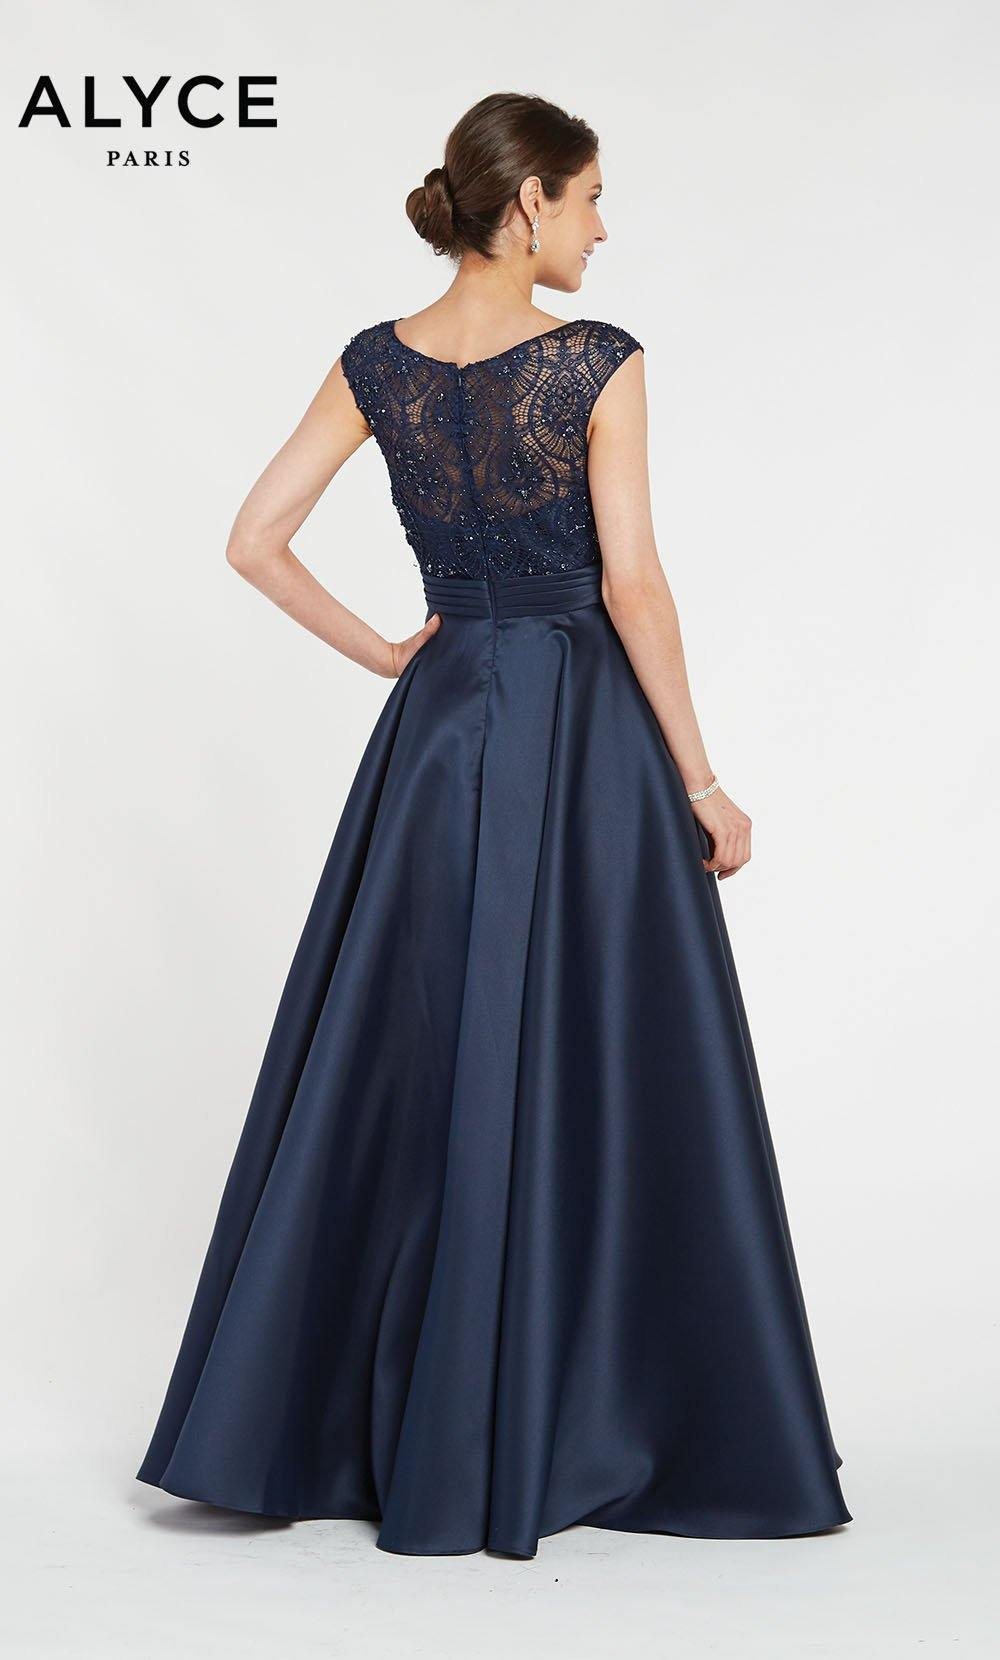 Alyce 27243 ballgown with a laced bodice, short capped sleeves and a boat neckline